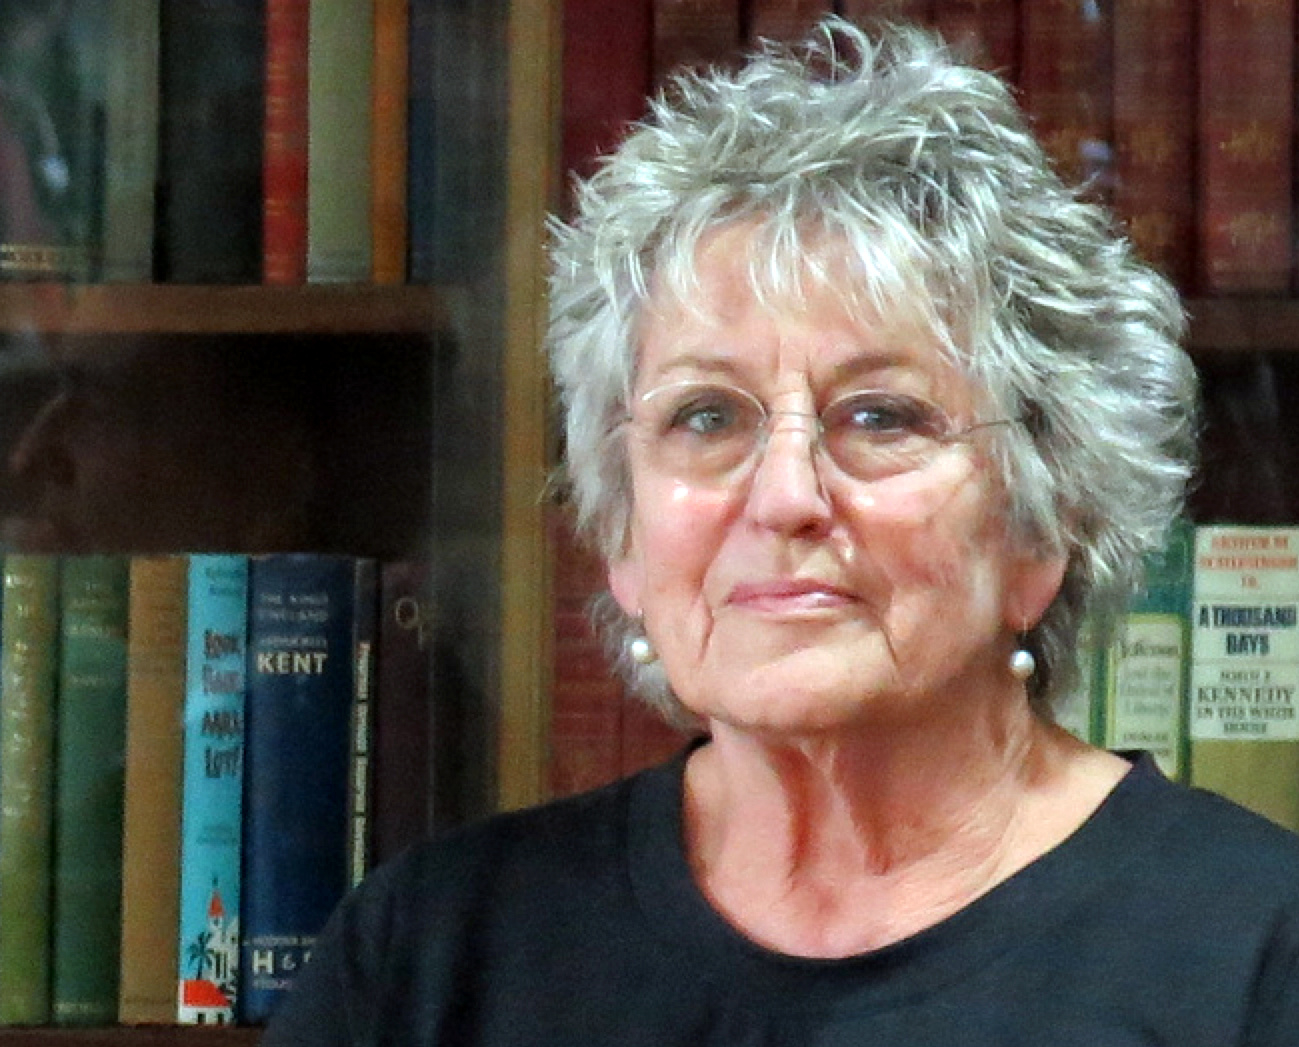 Porn Girl Provoking Hidden Hotel germaine greer - wikipedia